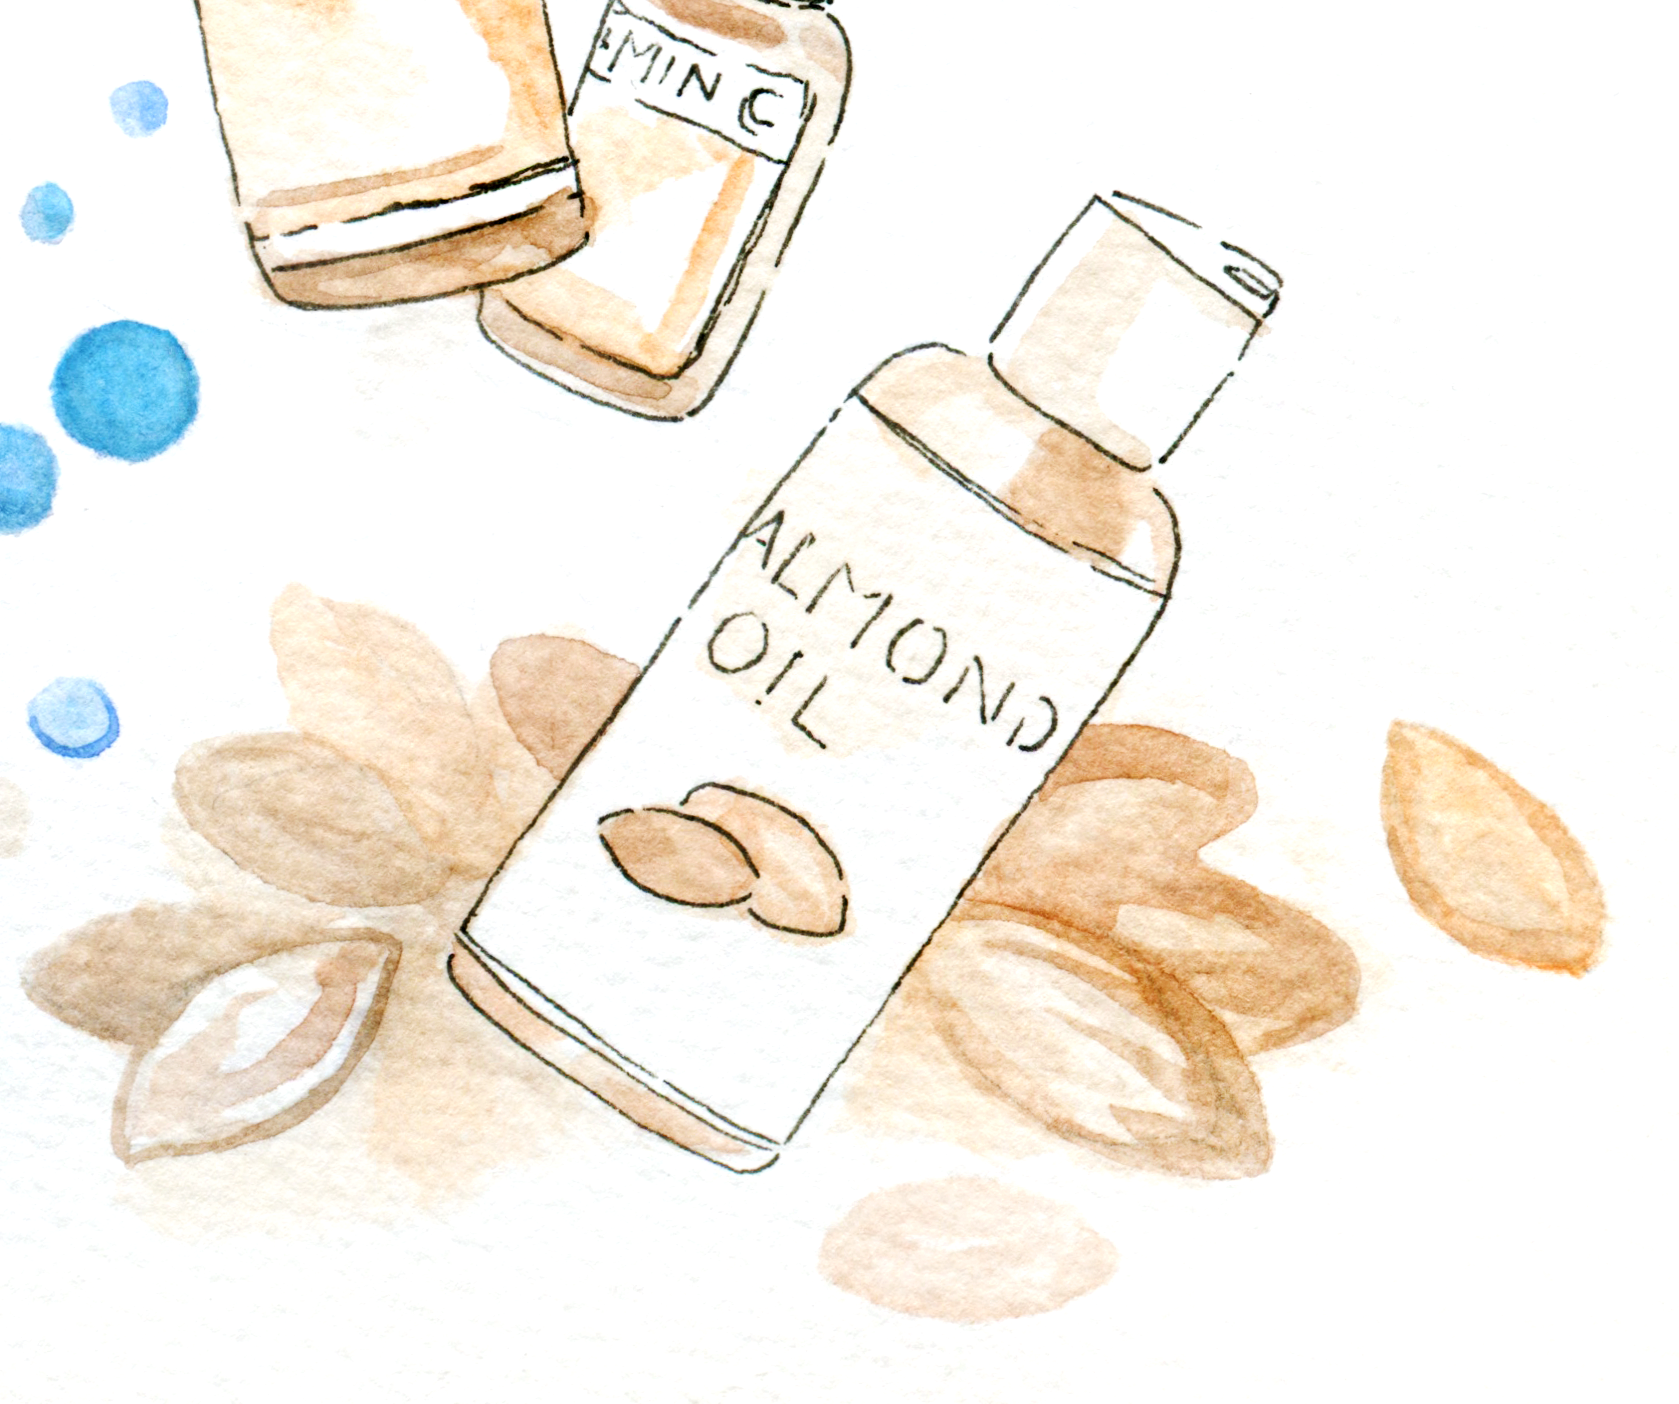 Korean Natural Skincare Routine For Cold Winters Evydraws